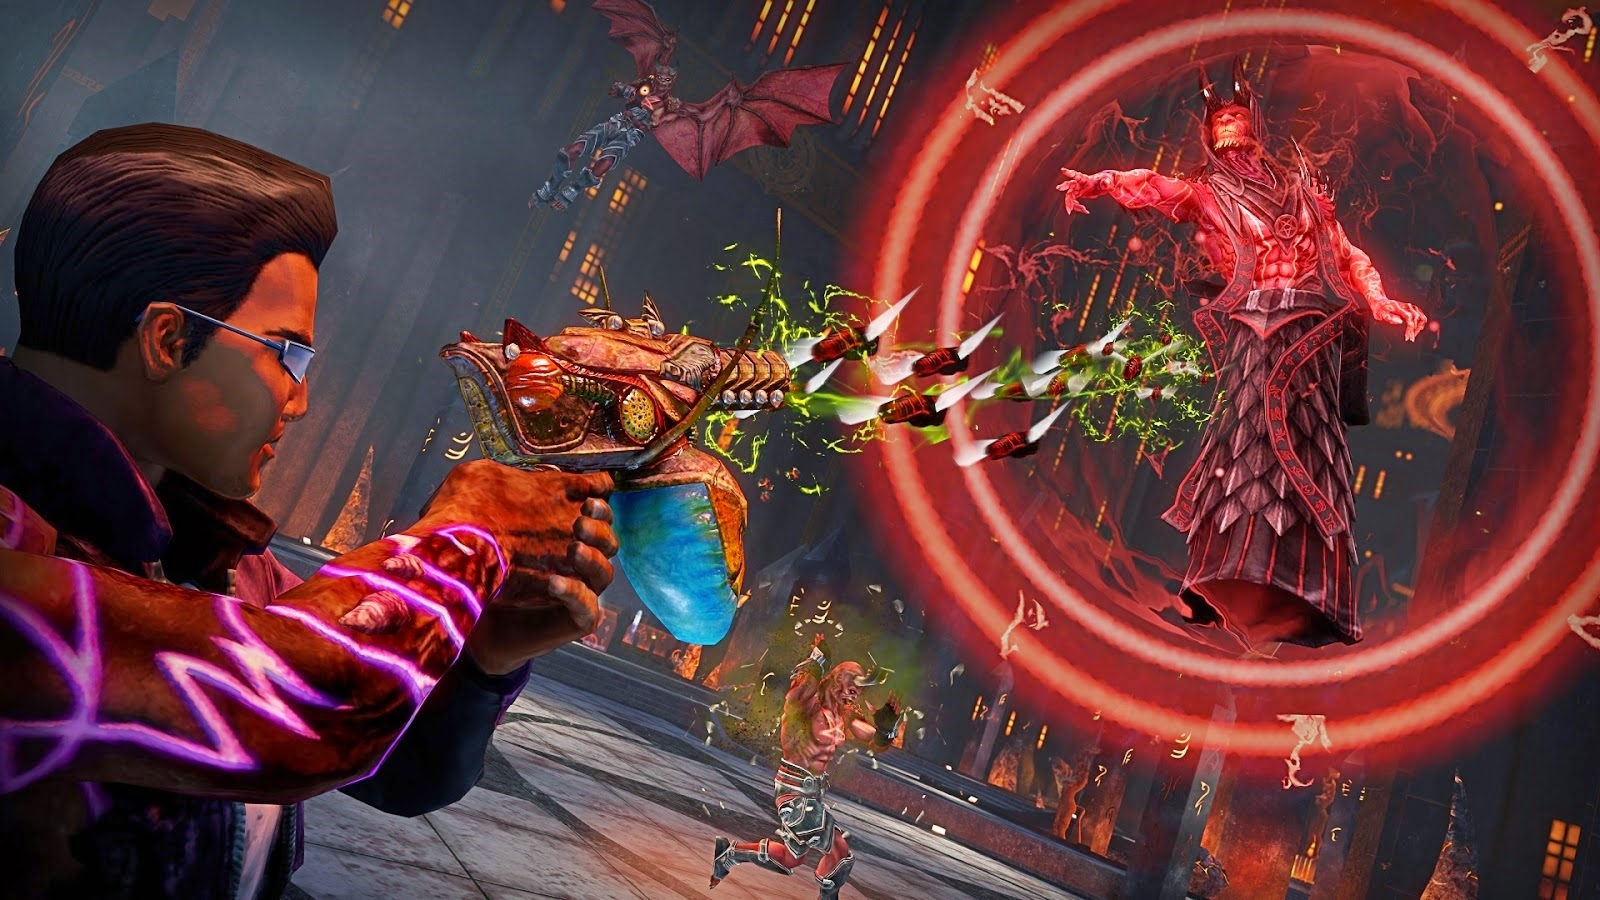 download saintsb row gat out of hell game